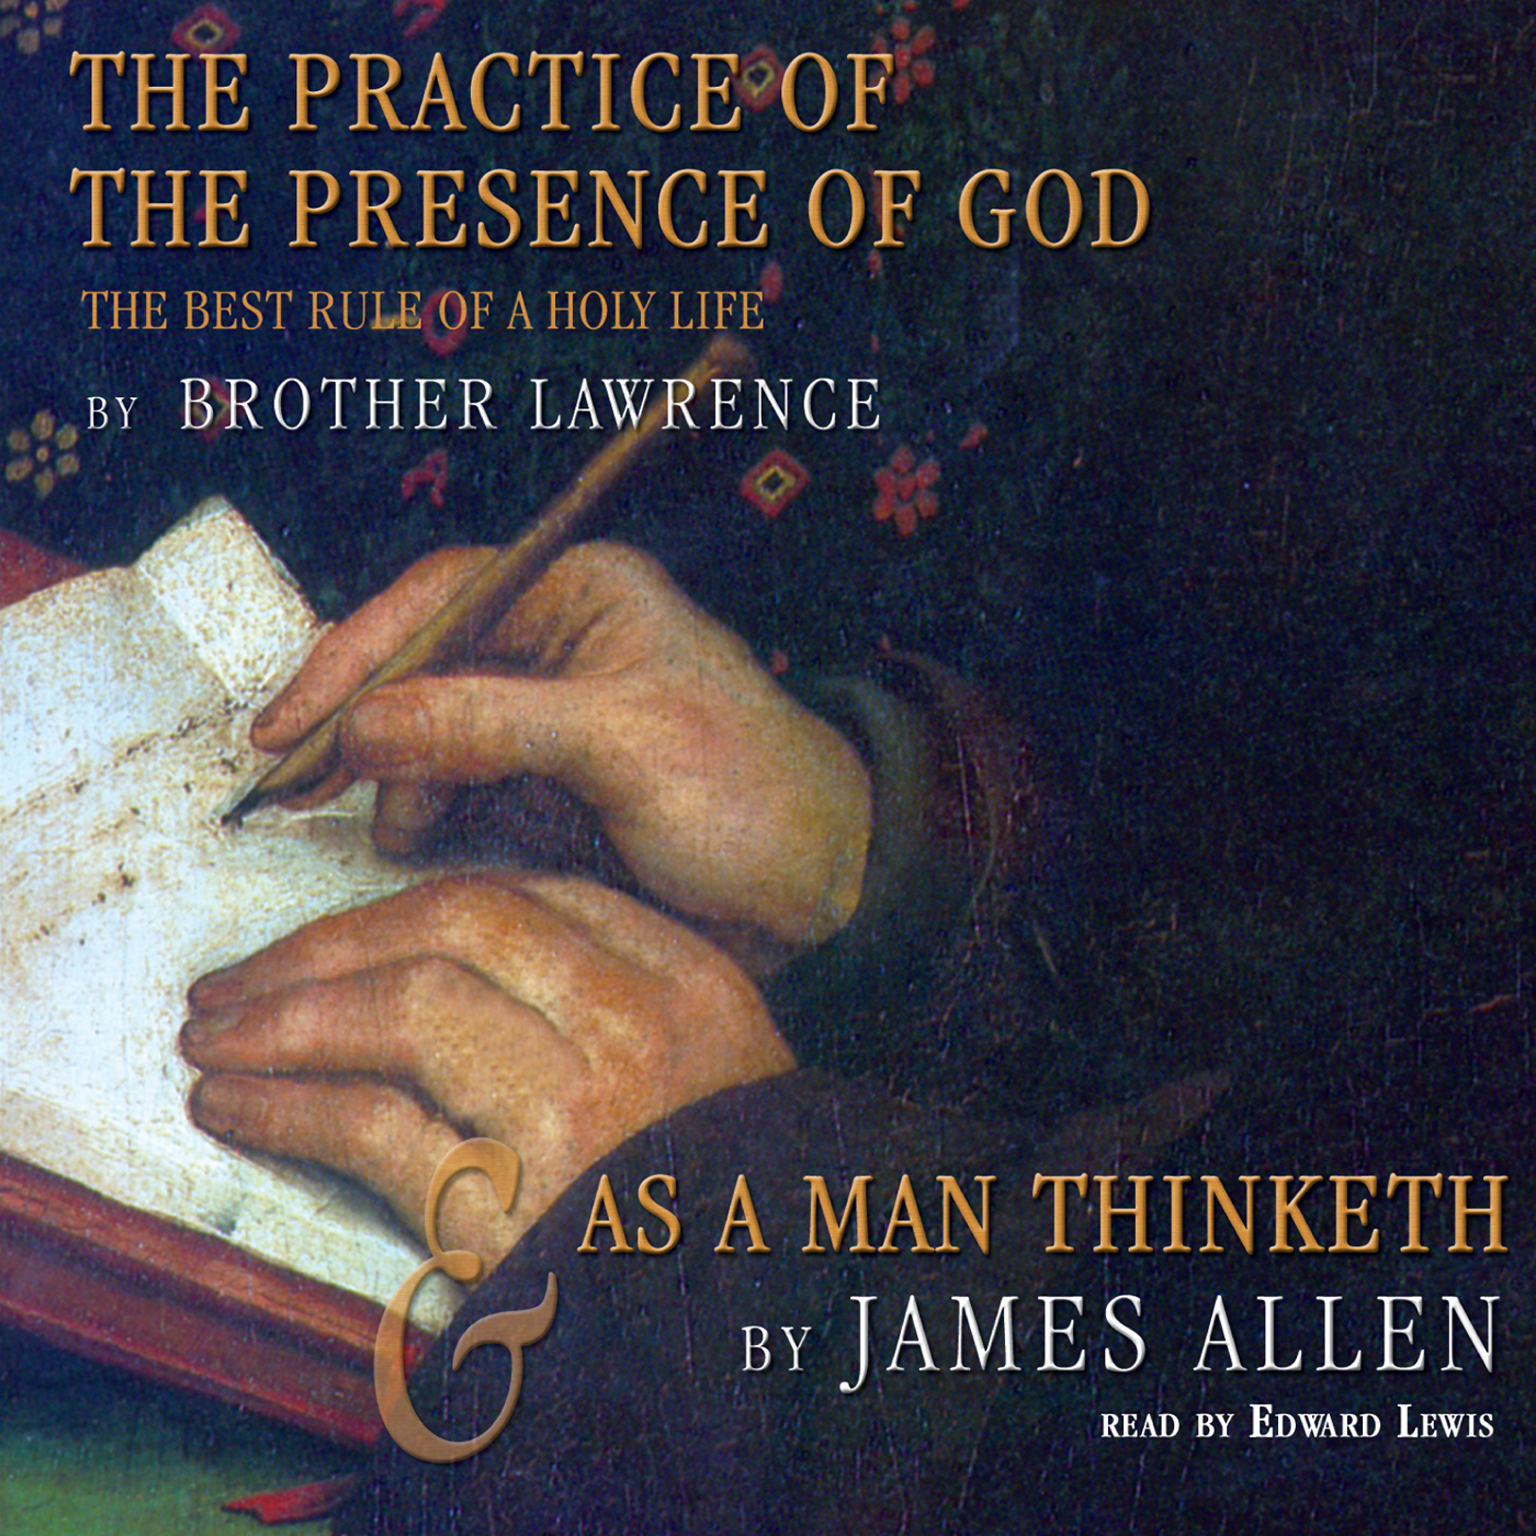 Printable The Practice of the Presence of God and As a Man Thinketh Audiobook Cover Art